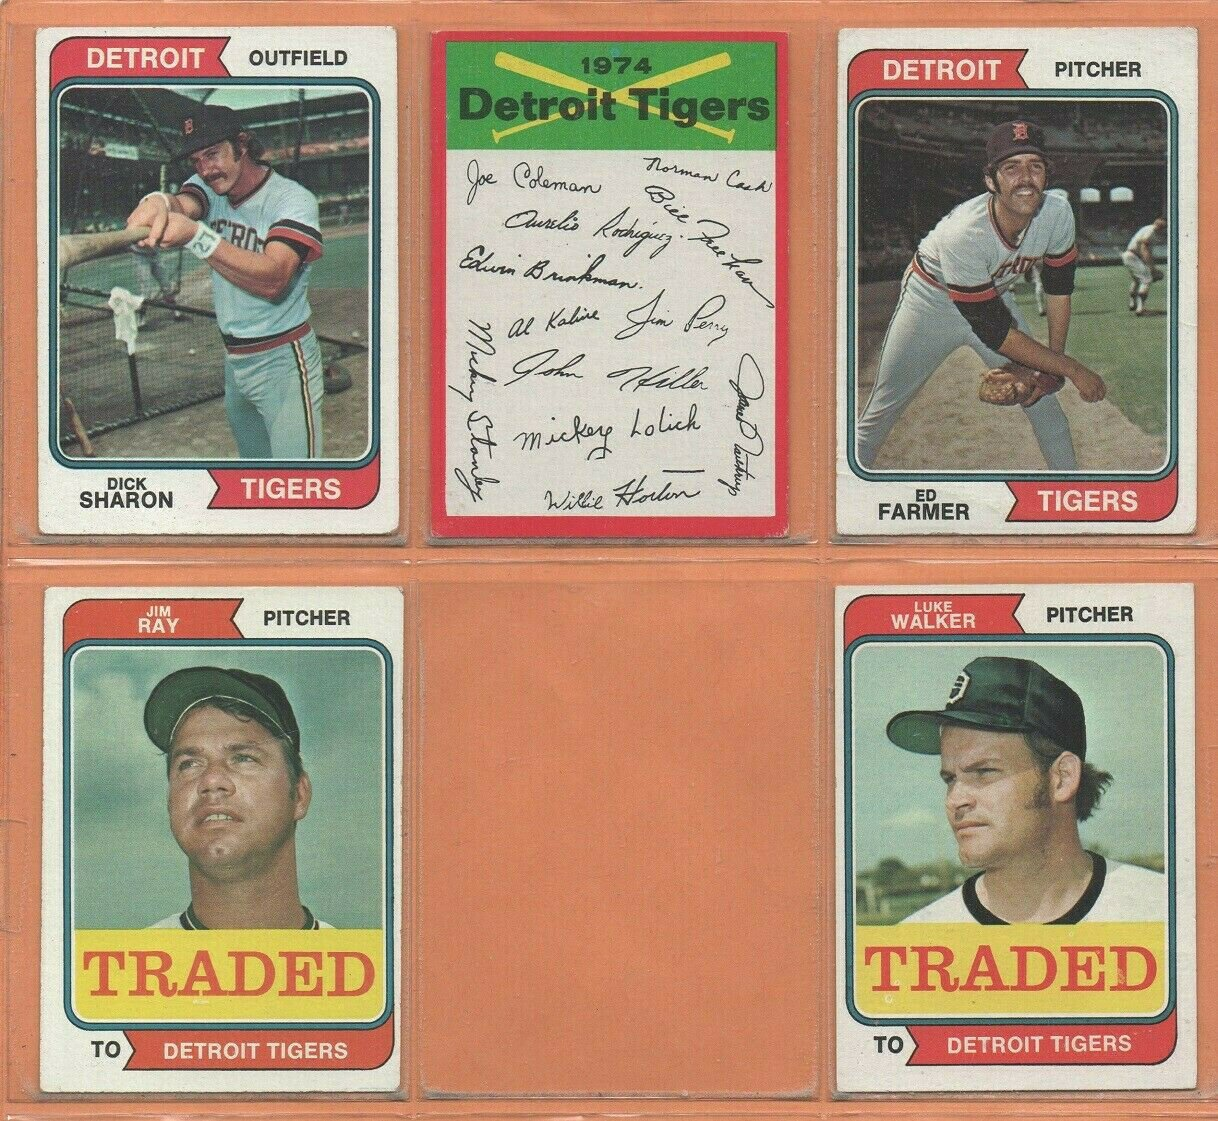 1974 1975 Topps Detroit Tigers Team Lot 17 diff Mickey Stanley Ben Oglivie Joe Coleman Aurelio